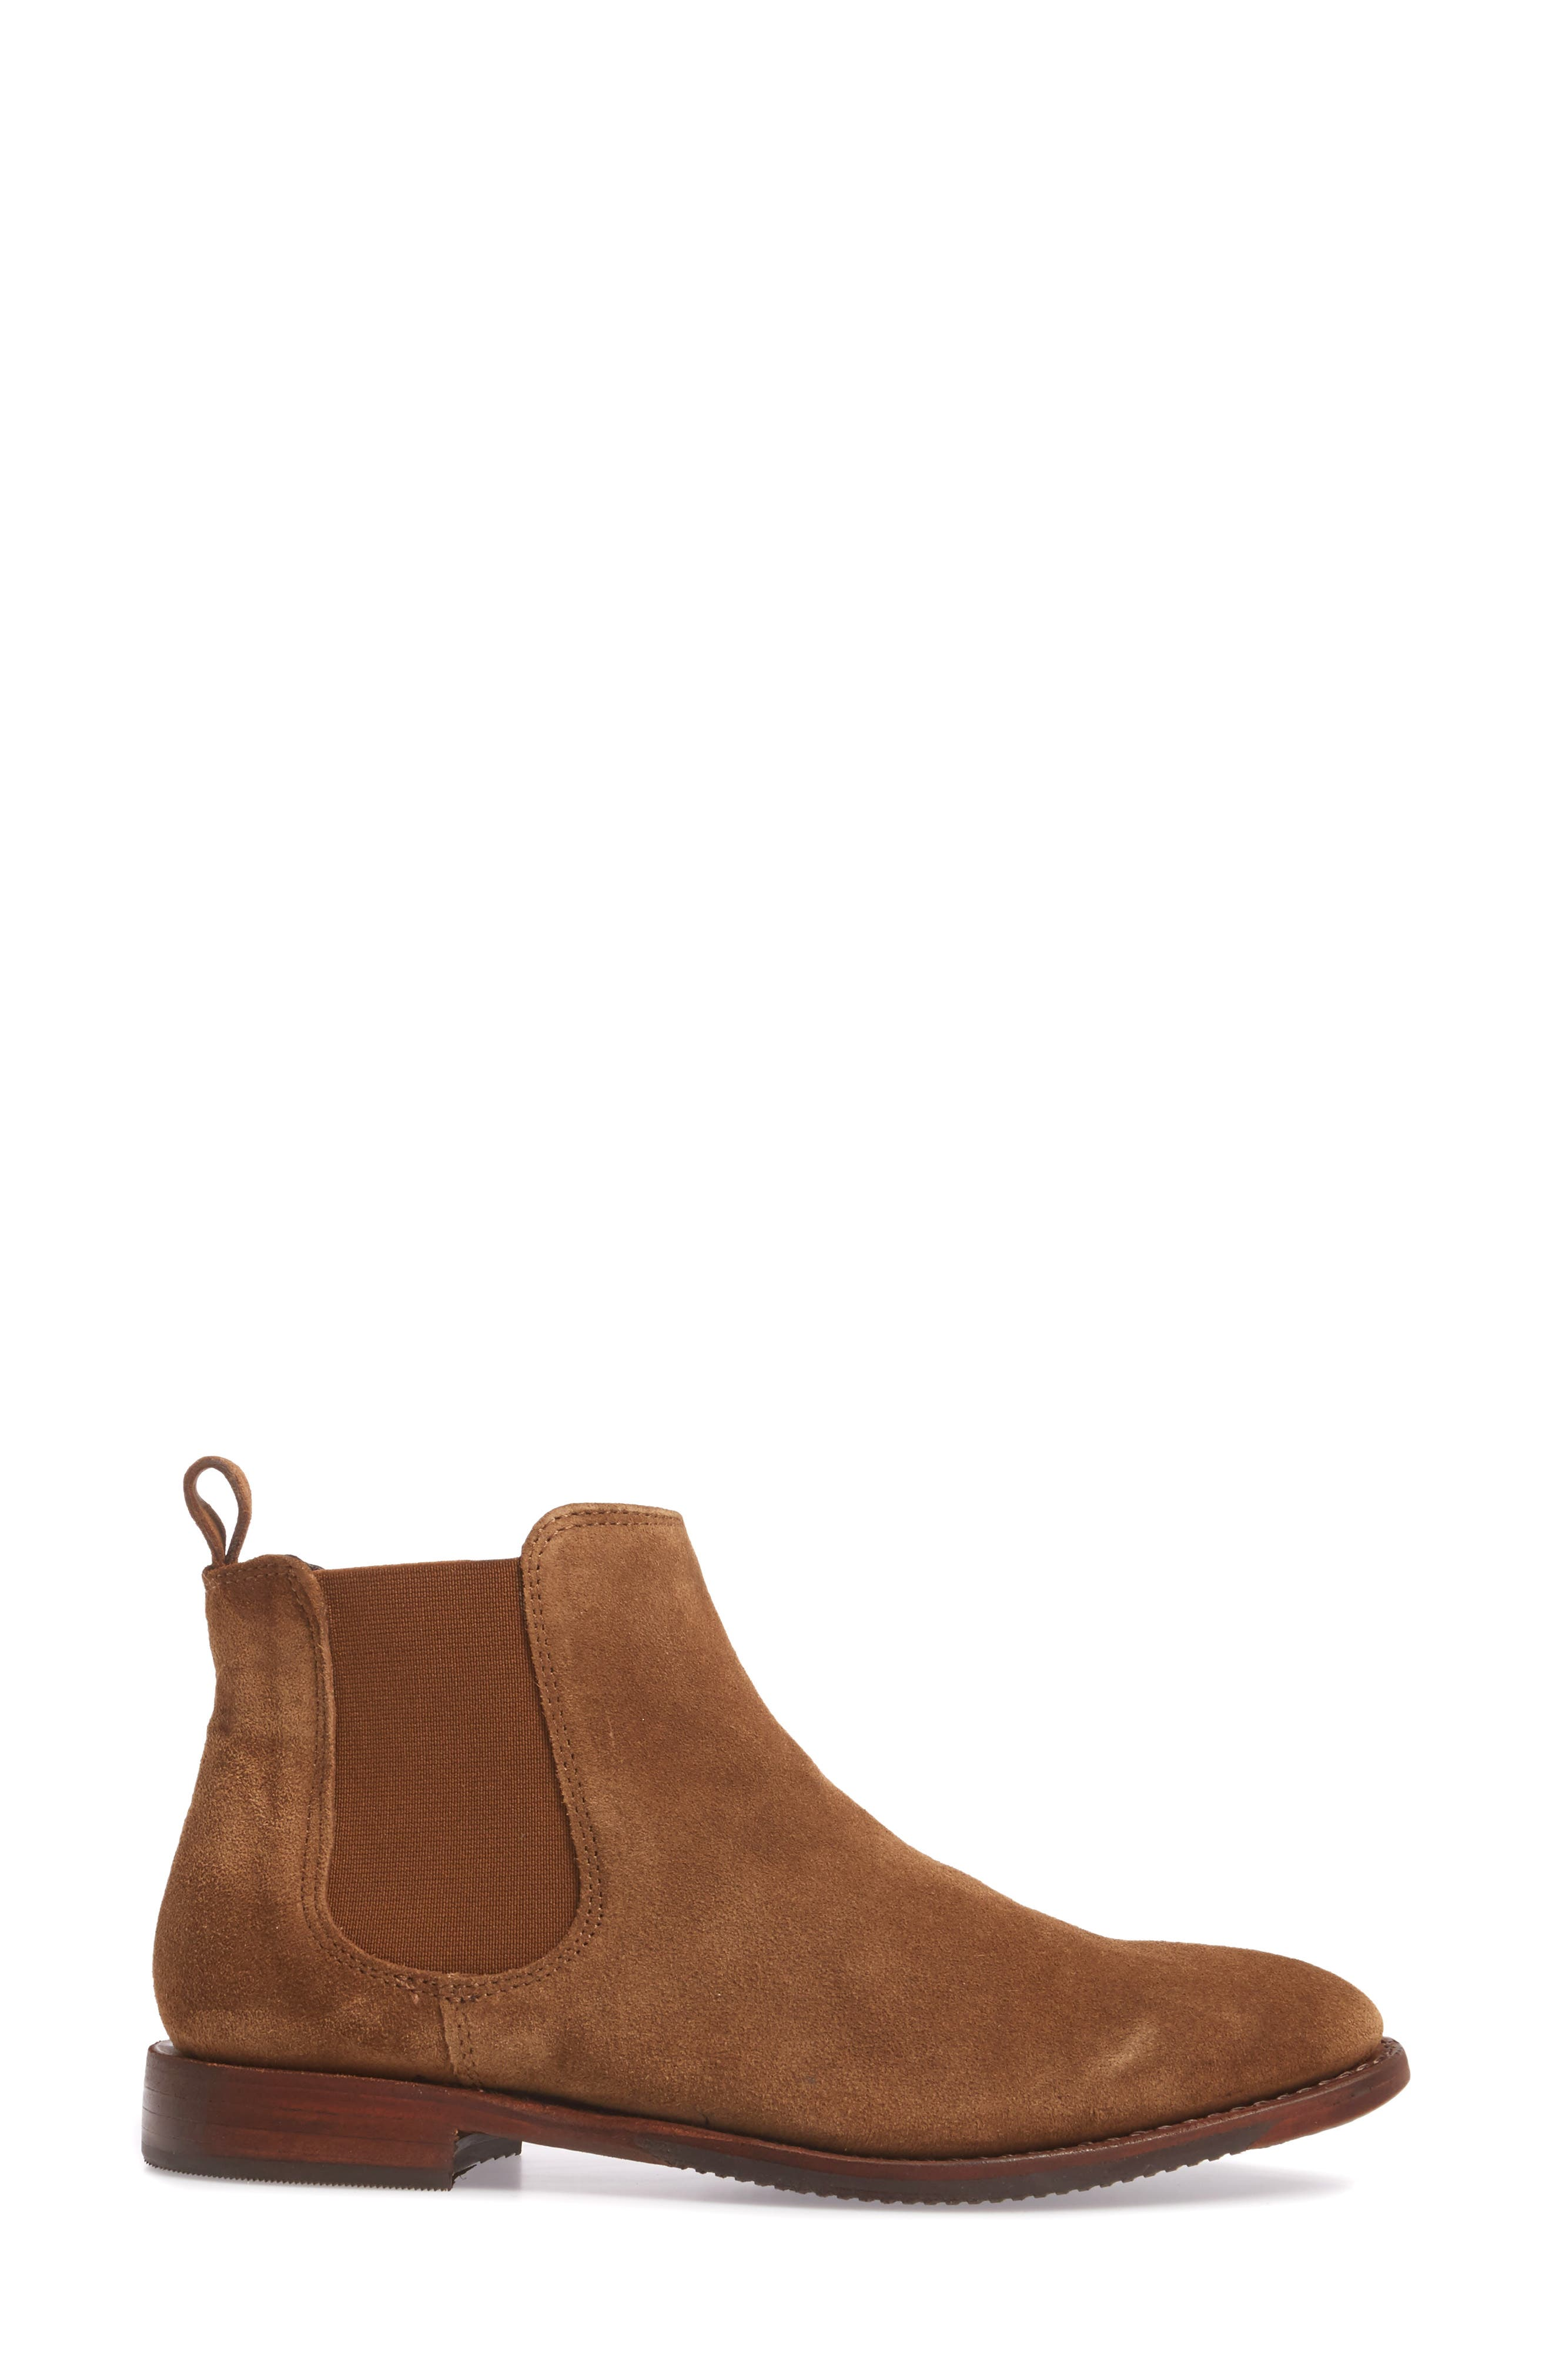 Gabrielle Chelsea Boot,                             Alternate thumbnail 3, color,                             Brown Suede